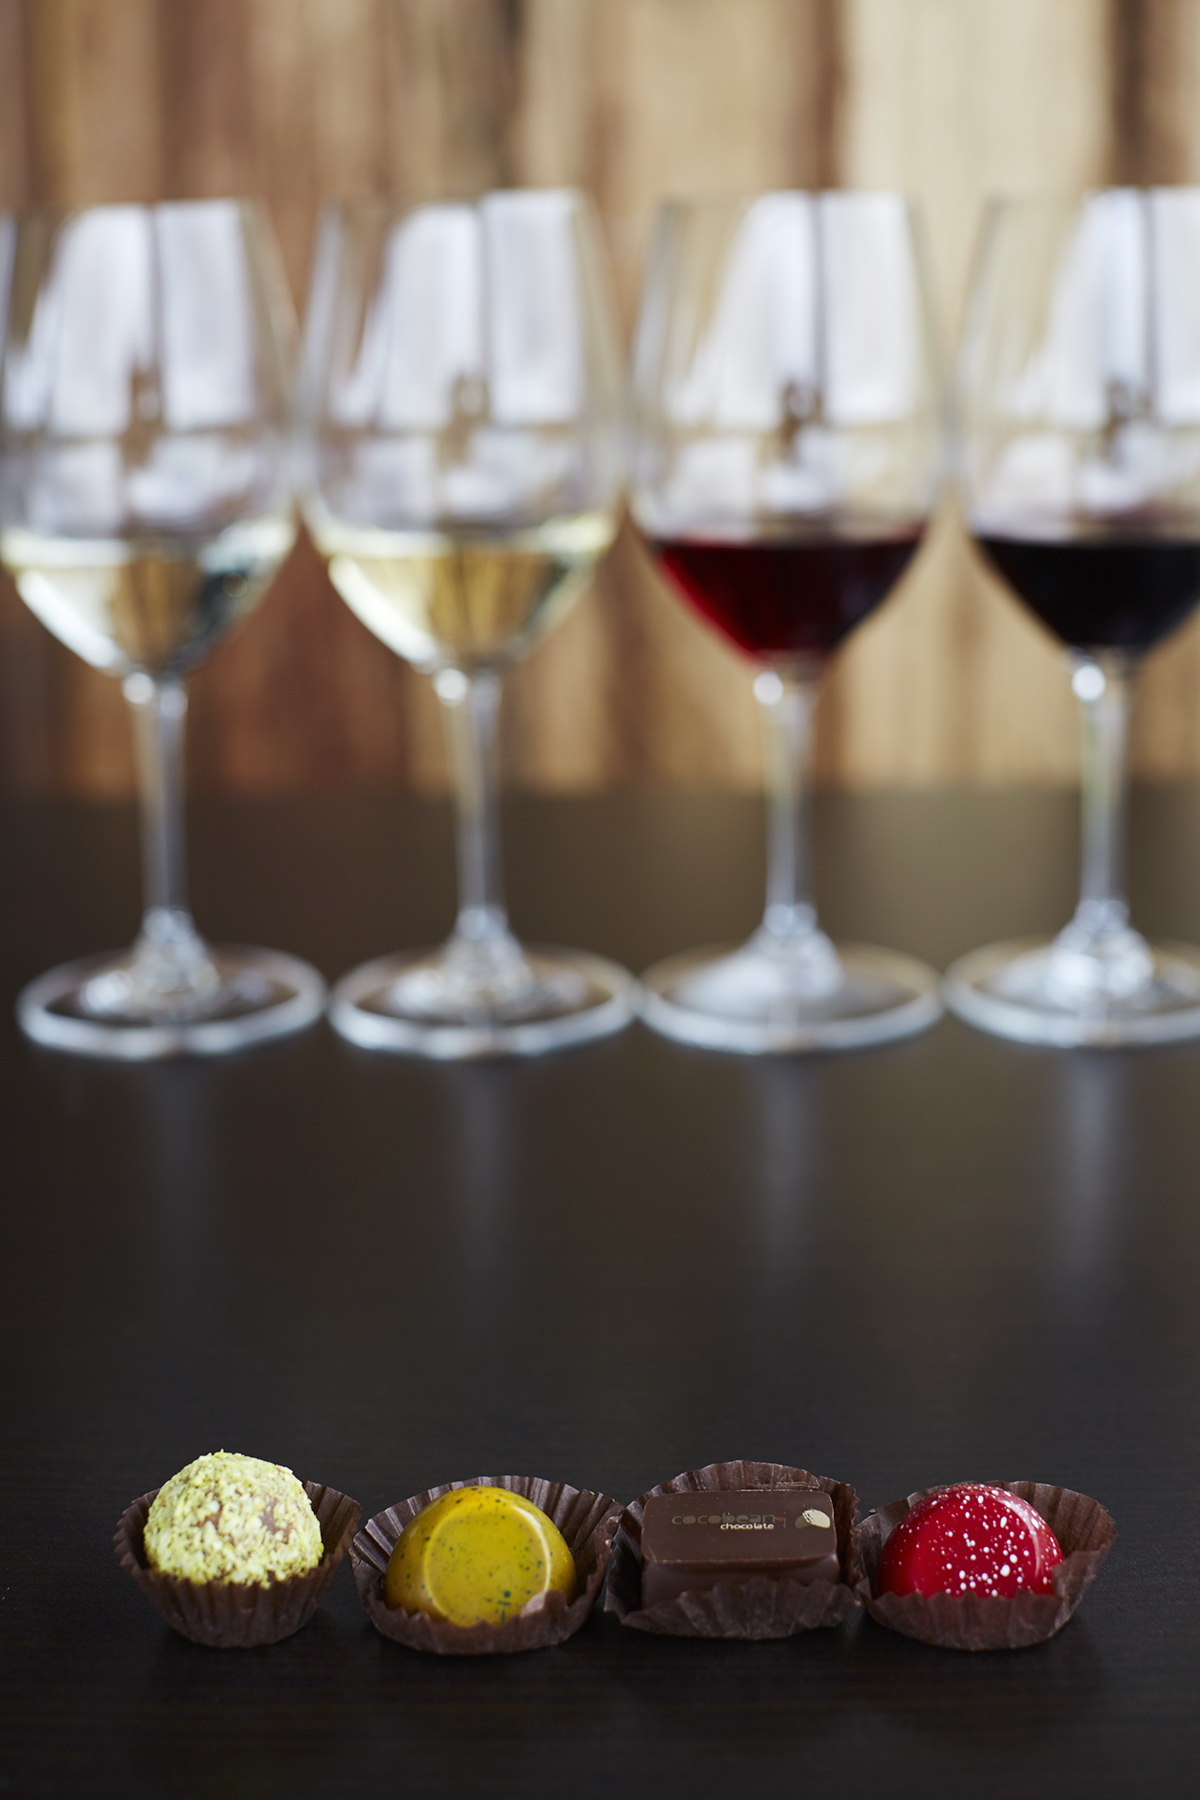 Decadent truffles matched with our wines